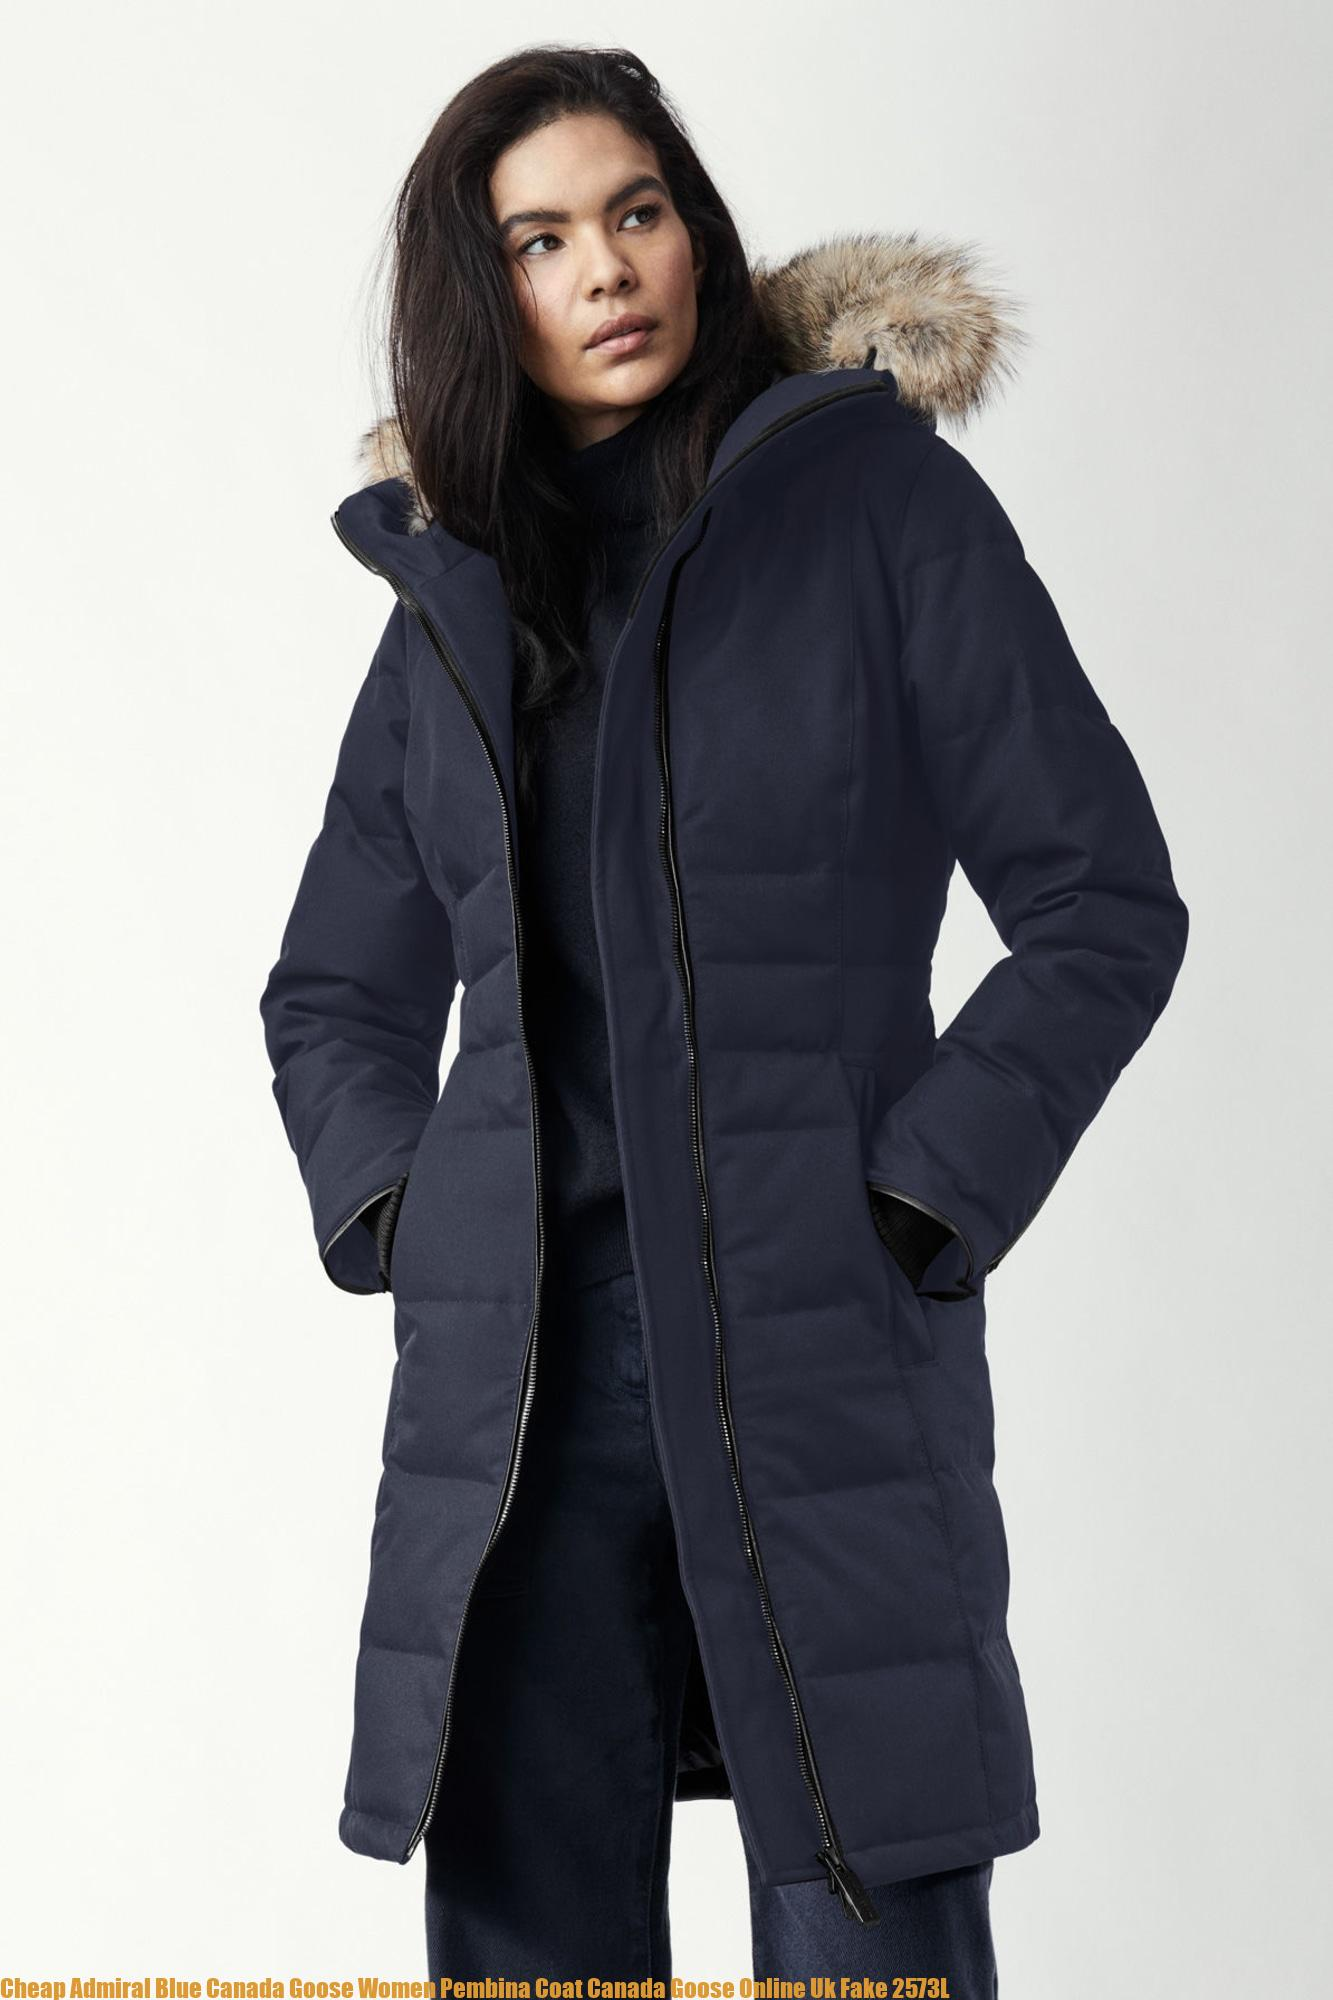 5207ae779f66c Cheap Admiral Blue Canada Goose Women Pembina Coat Canada Goose Online Uk  Fake 2573L – Cheap Canada Goose Outlet Down Jackets   Parkas On Sale 75% Off